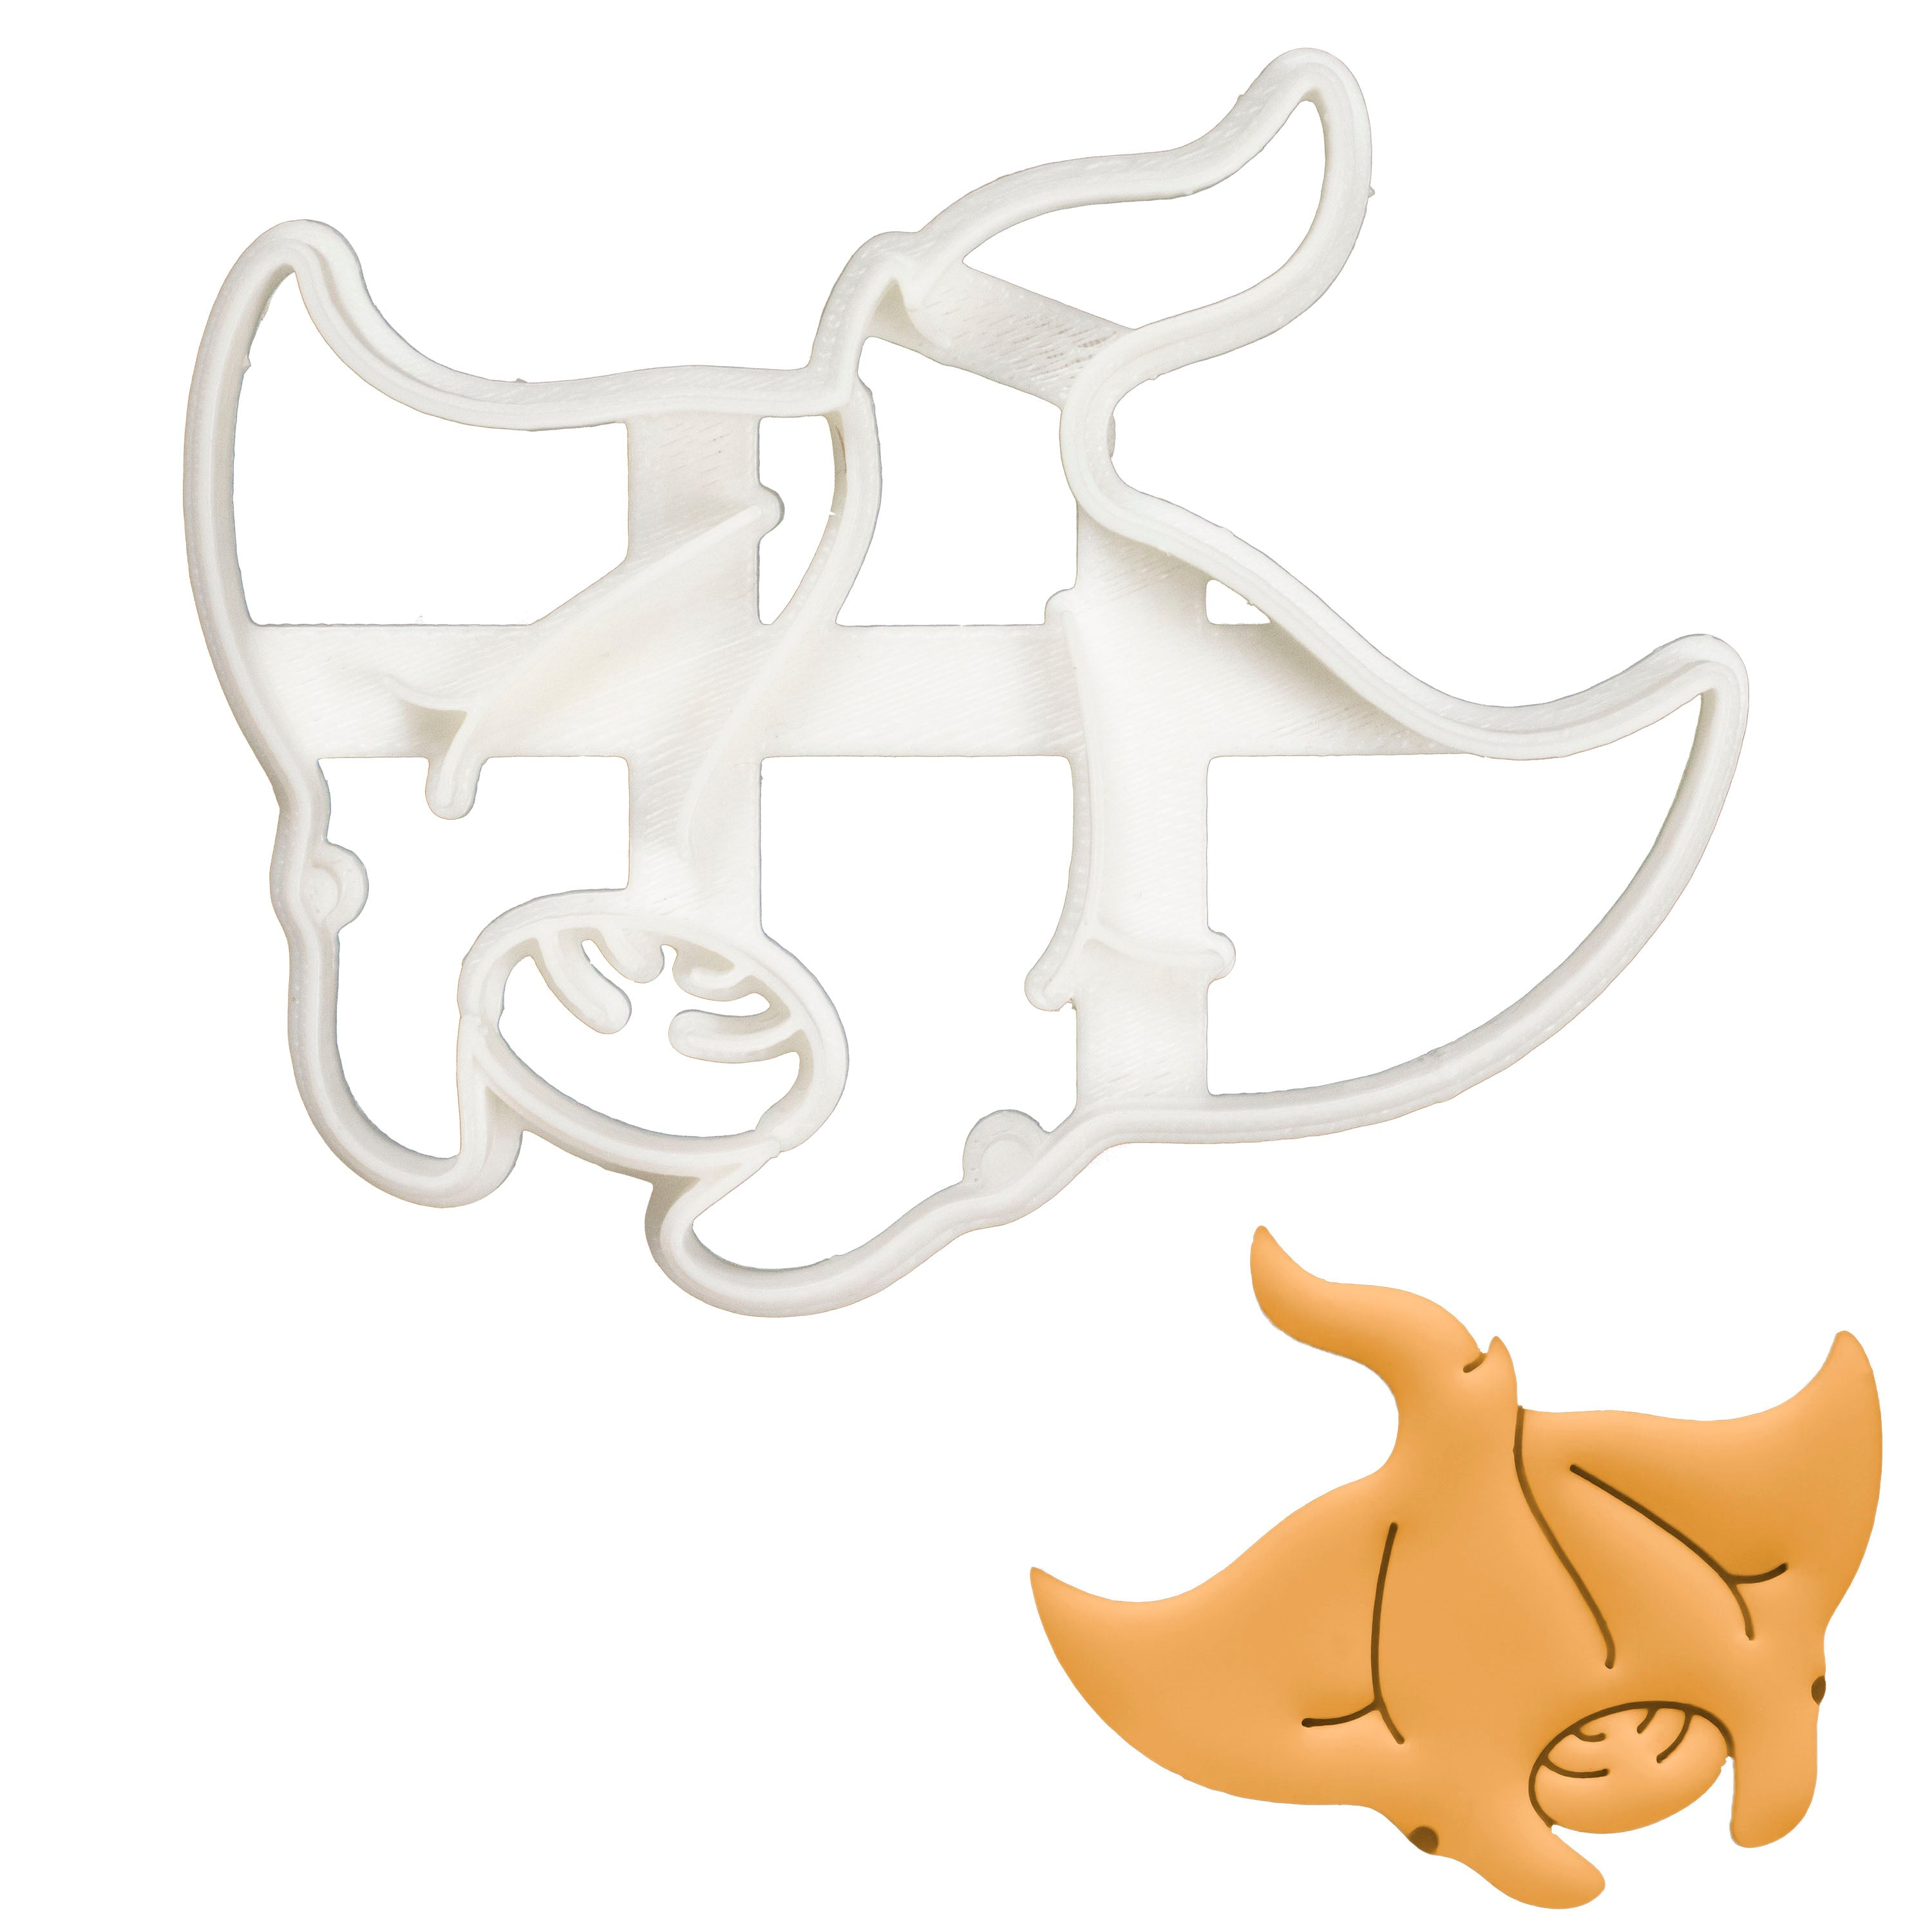 Manta Ray cookie cutter